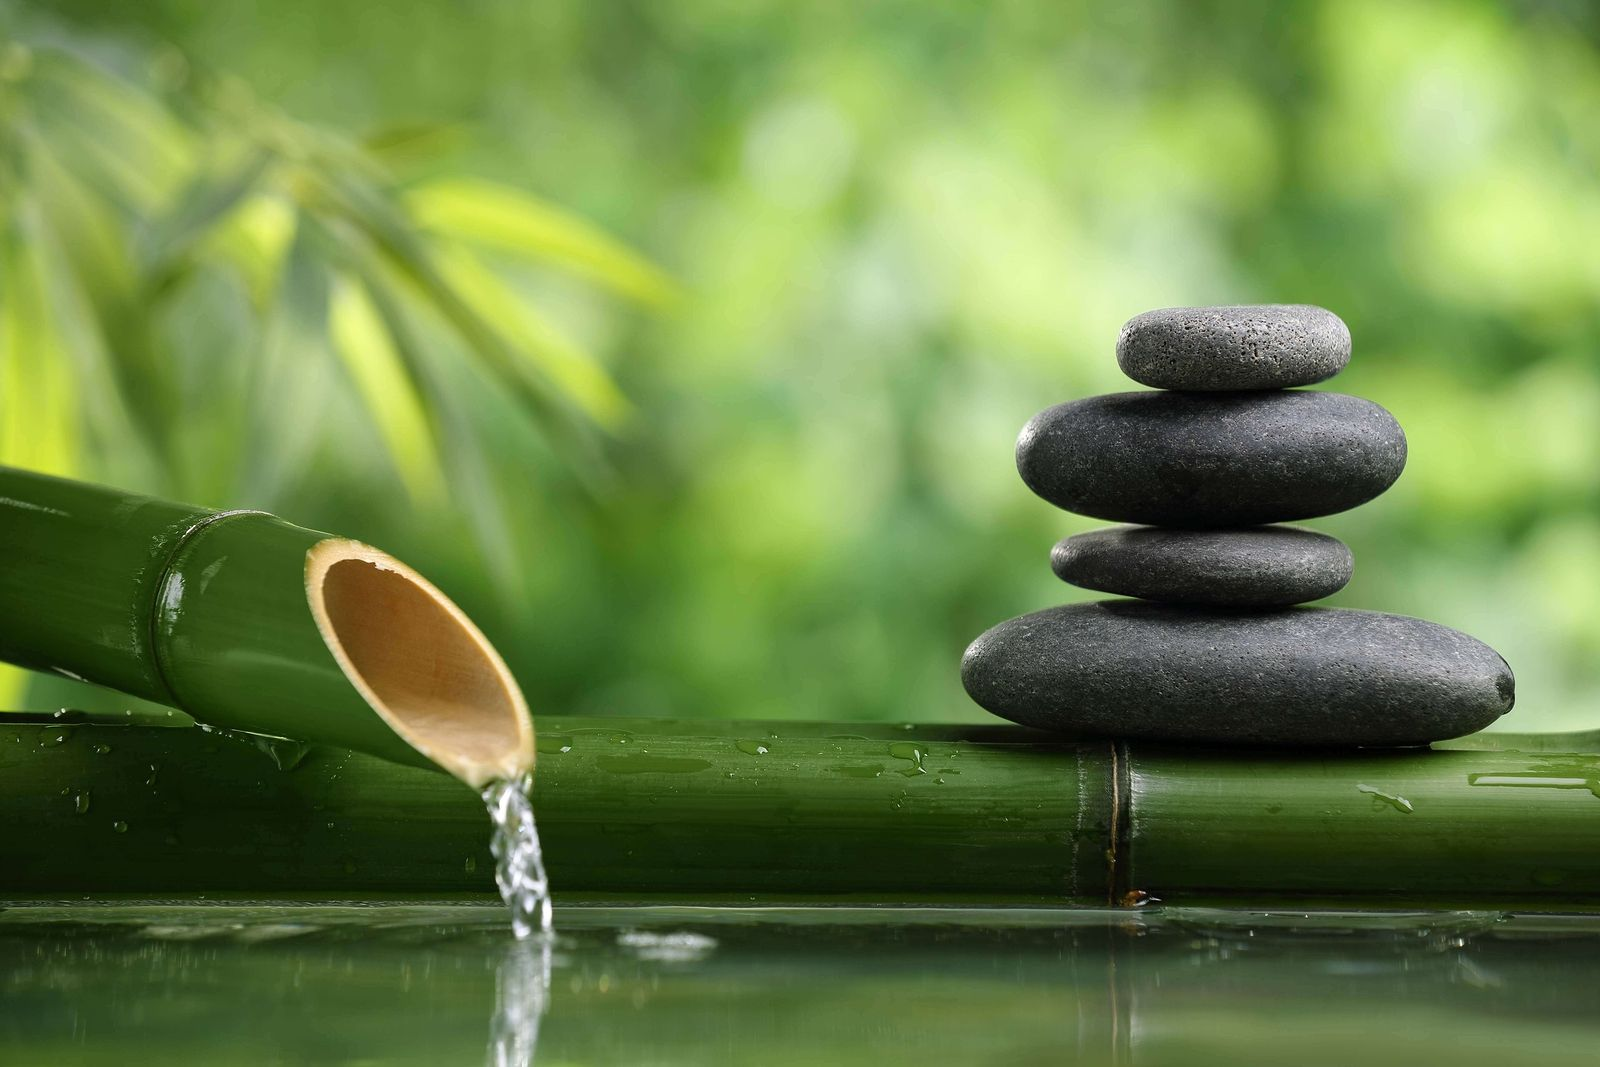 Beauty Salons in Grimsby, Cleethorpes, Louth - Essential Therapies by Sarah  Mathews | Bamboo fountain, Zen garden, Meditation